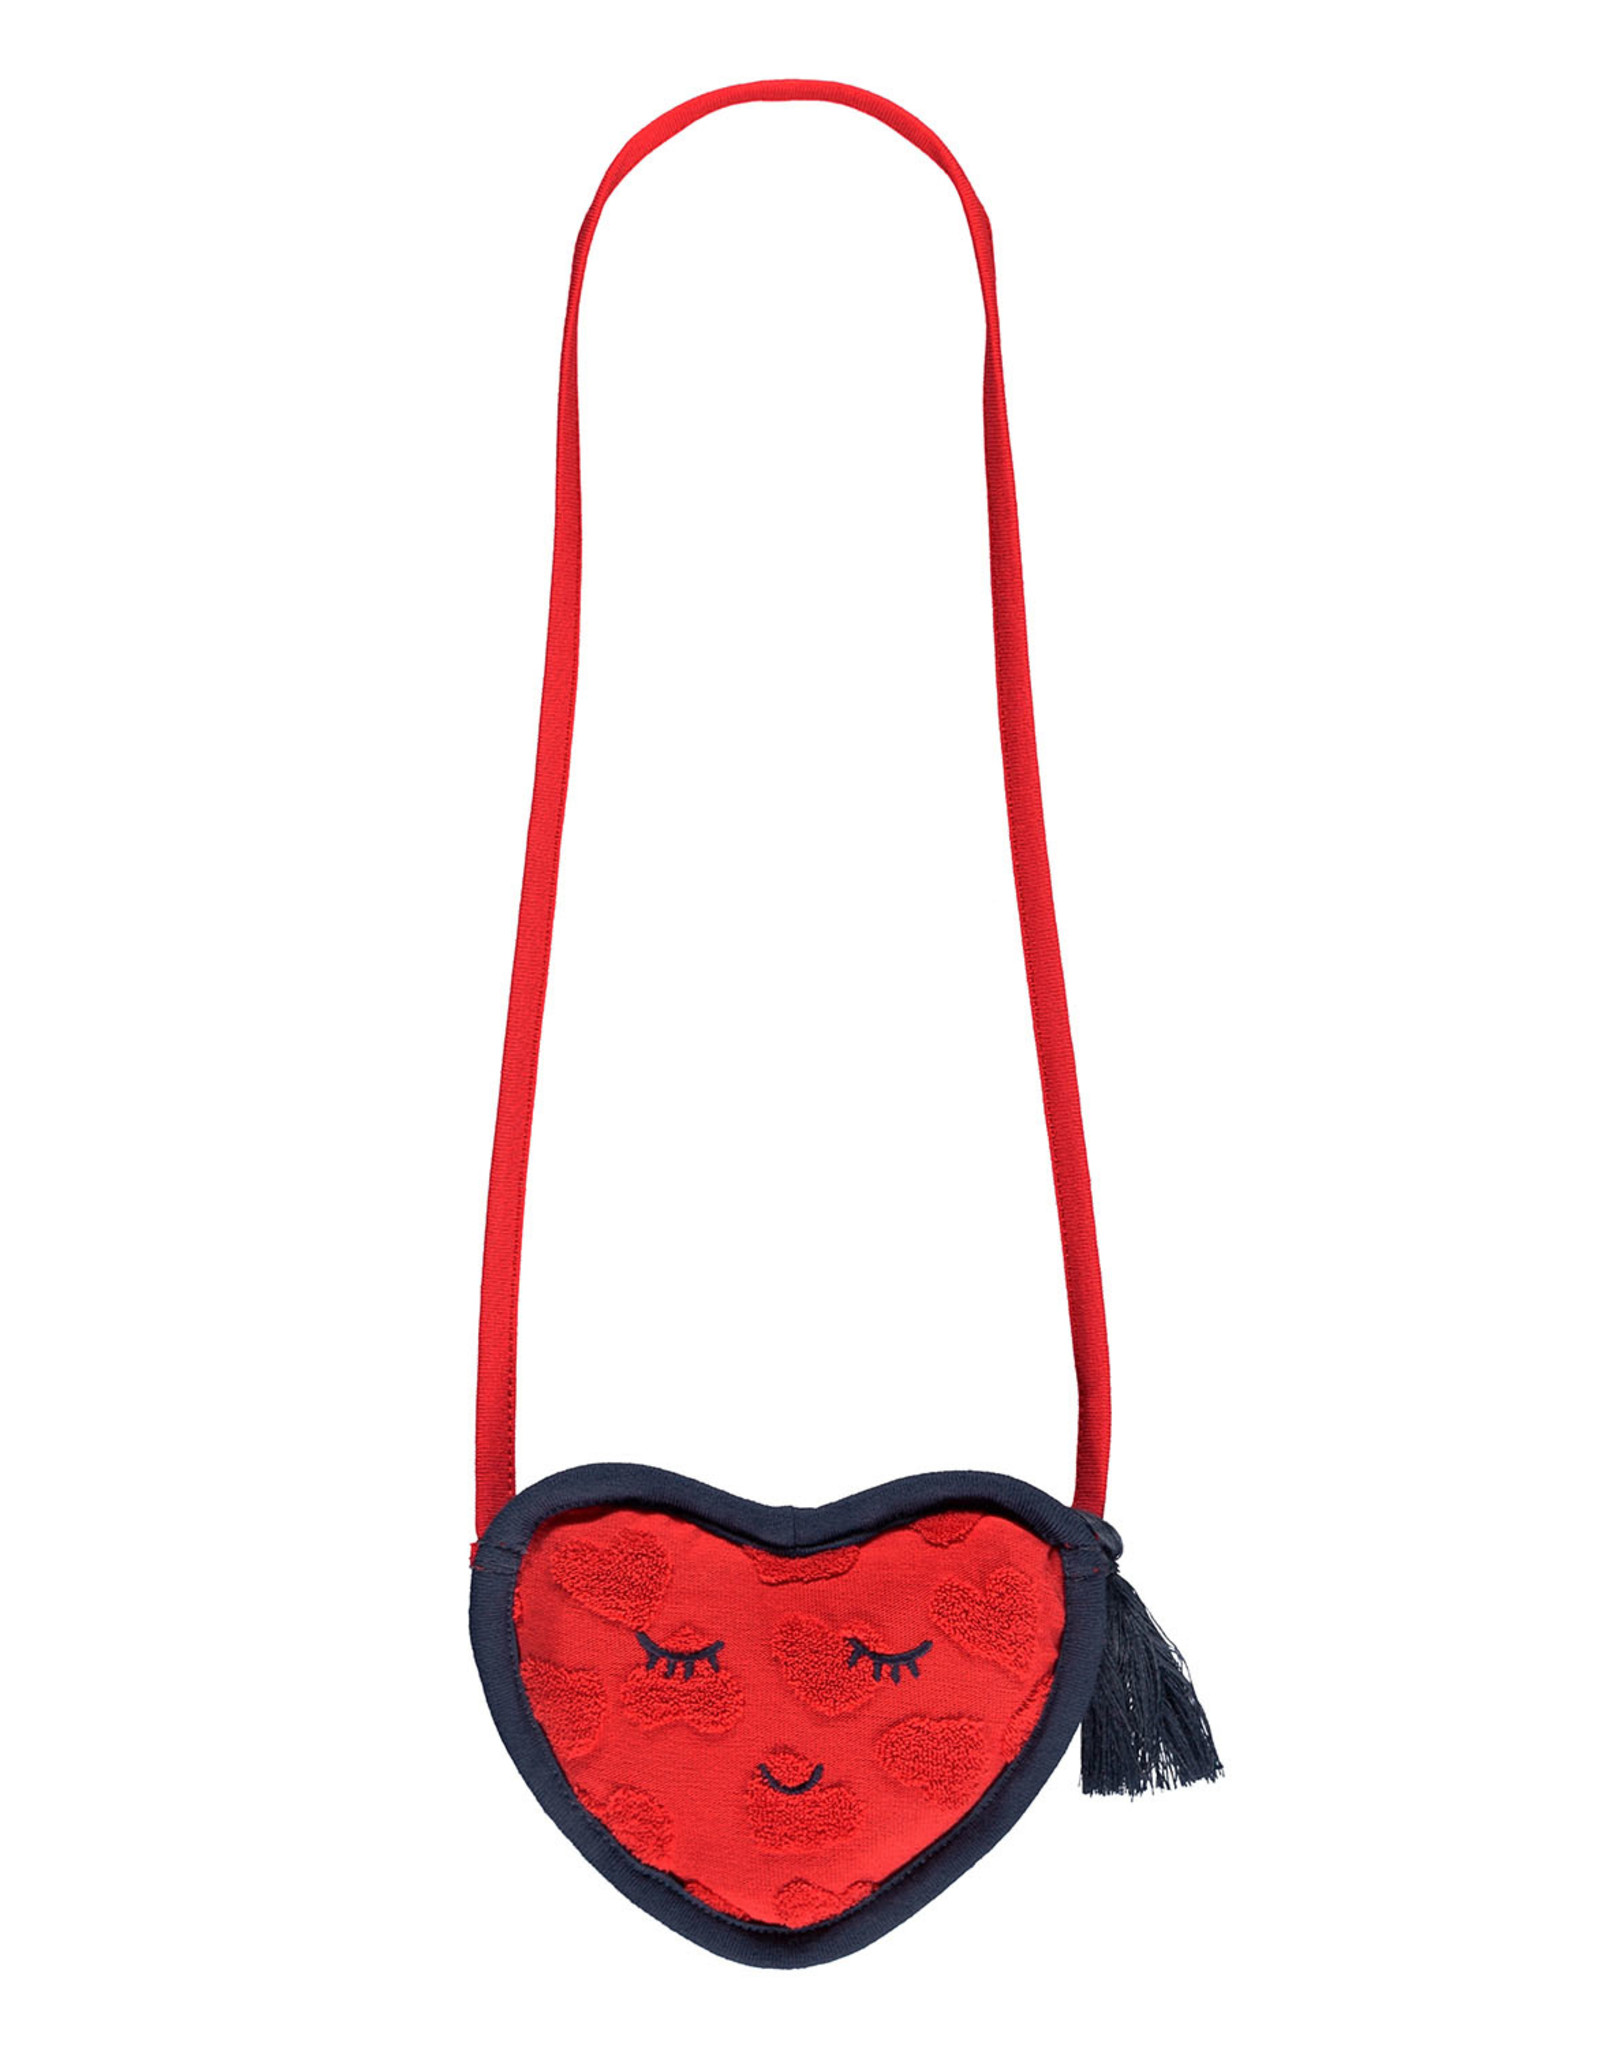 LOOXS Little Little wallet with strap 5x, RED APPLE